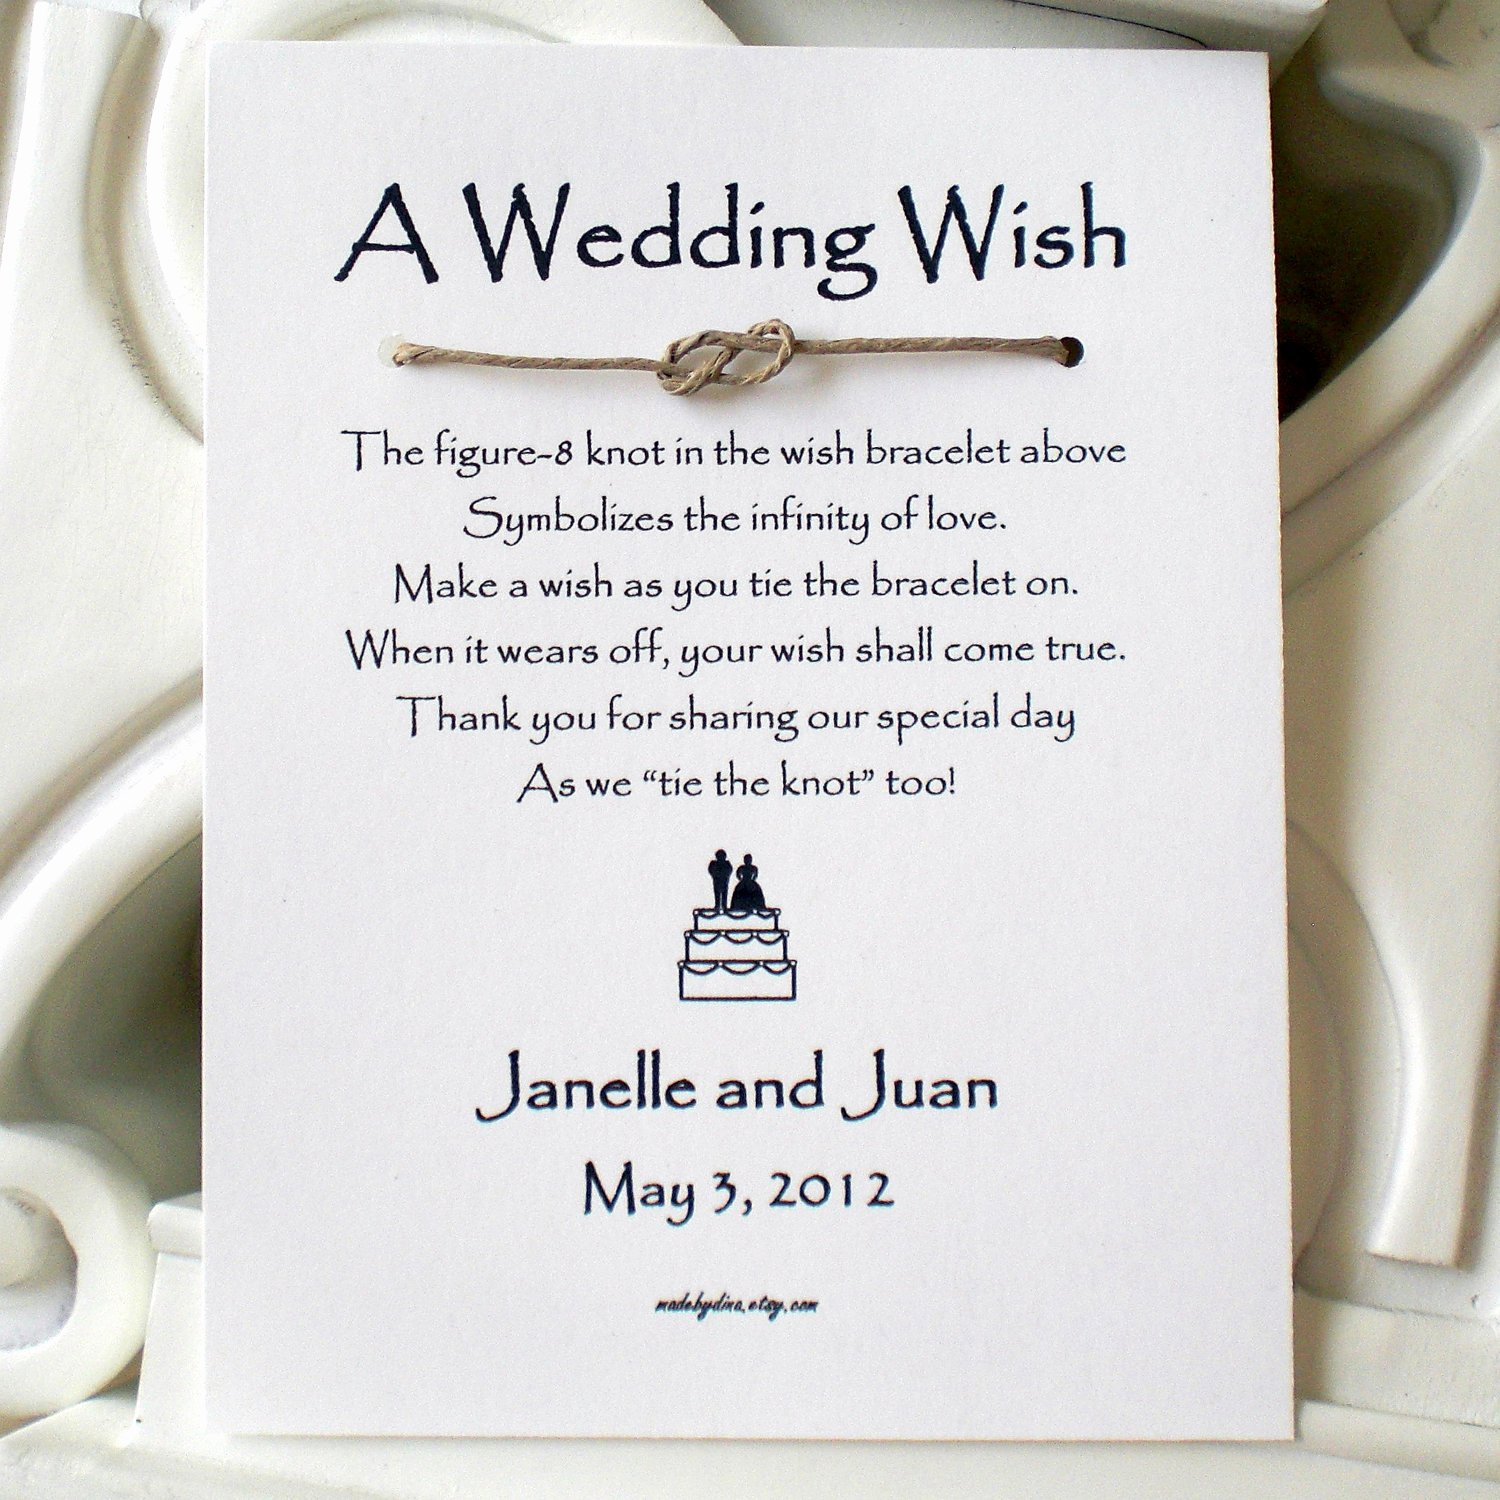 Funny Wedding Invitation for Friends Luxury Wedding Invitation Sayings and Quotes Quotesgram